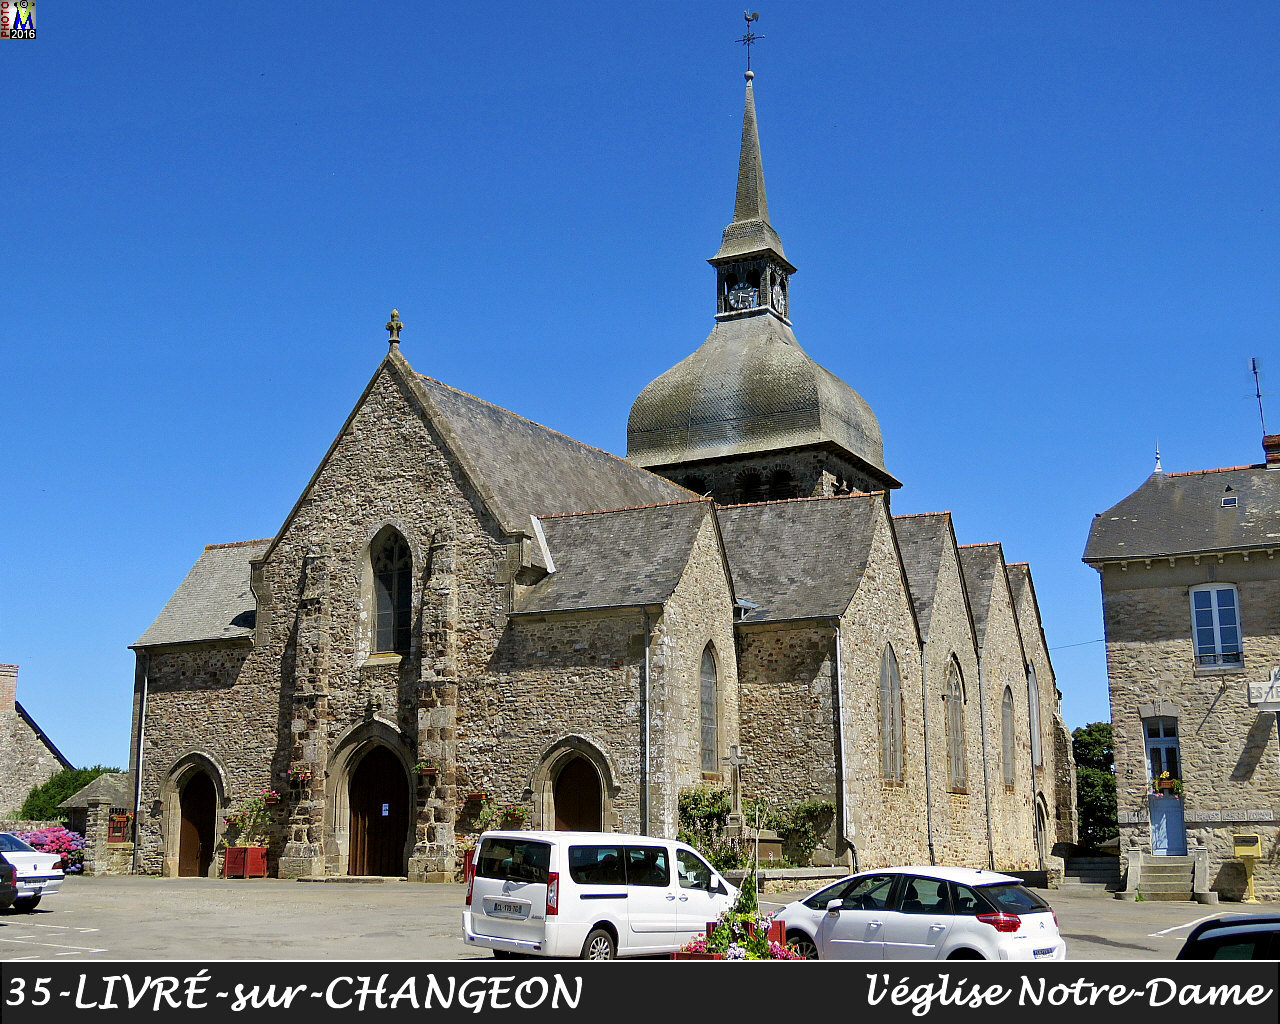 35LIVRE-CHANGEON_eglise_100.jpg